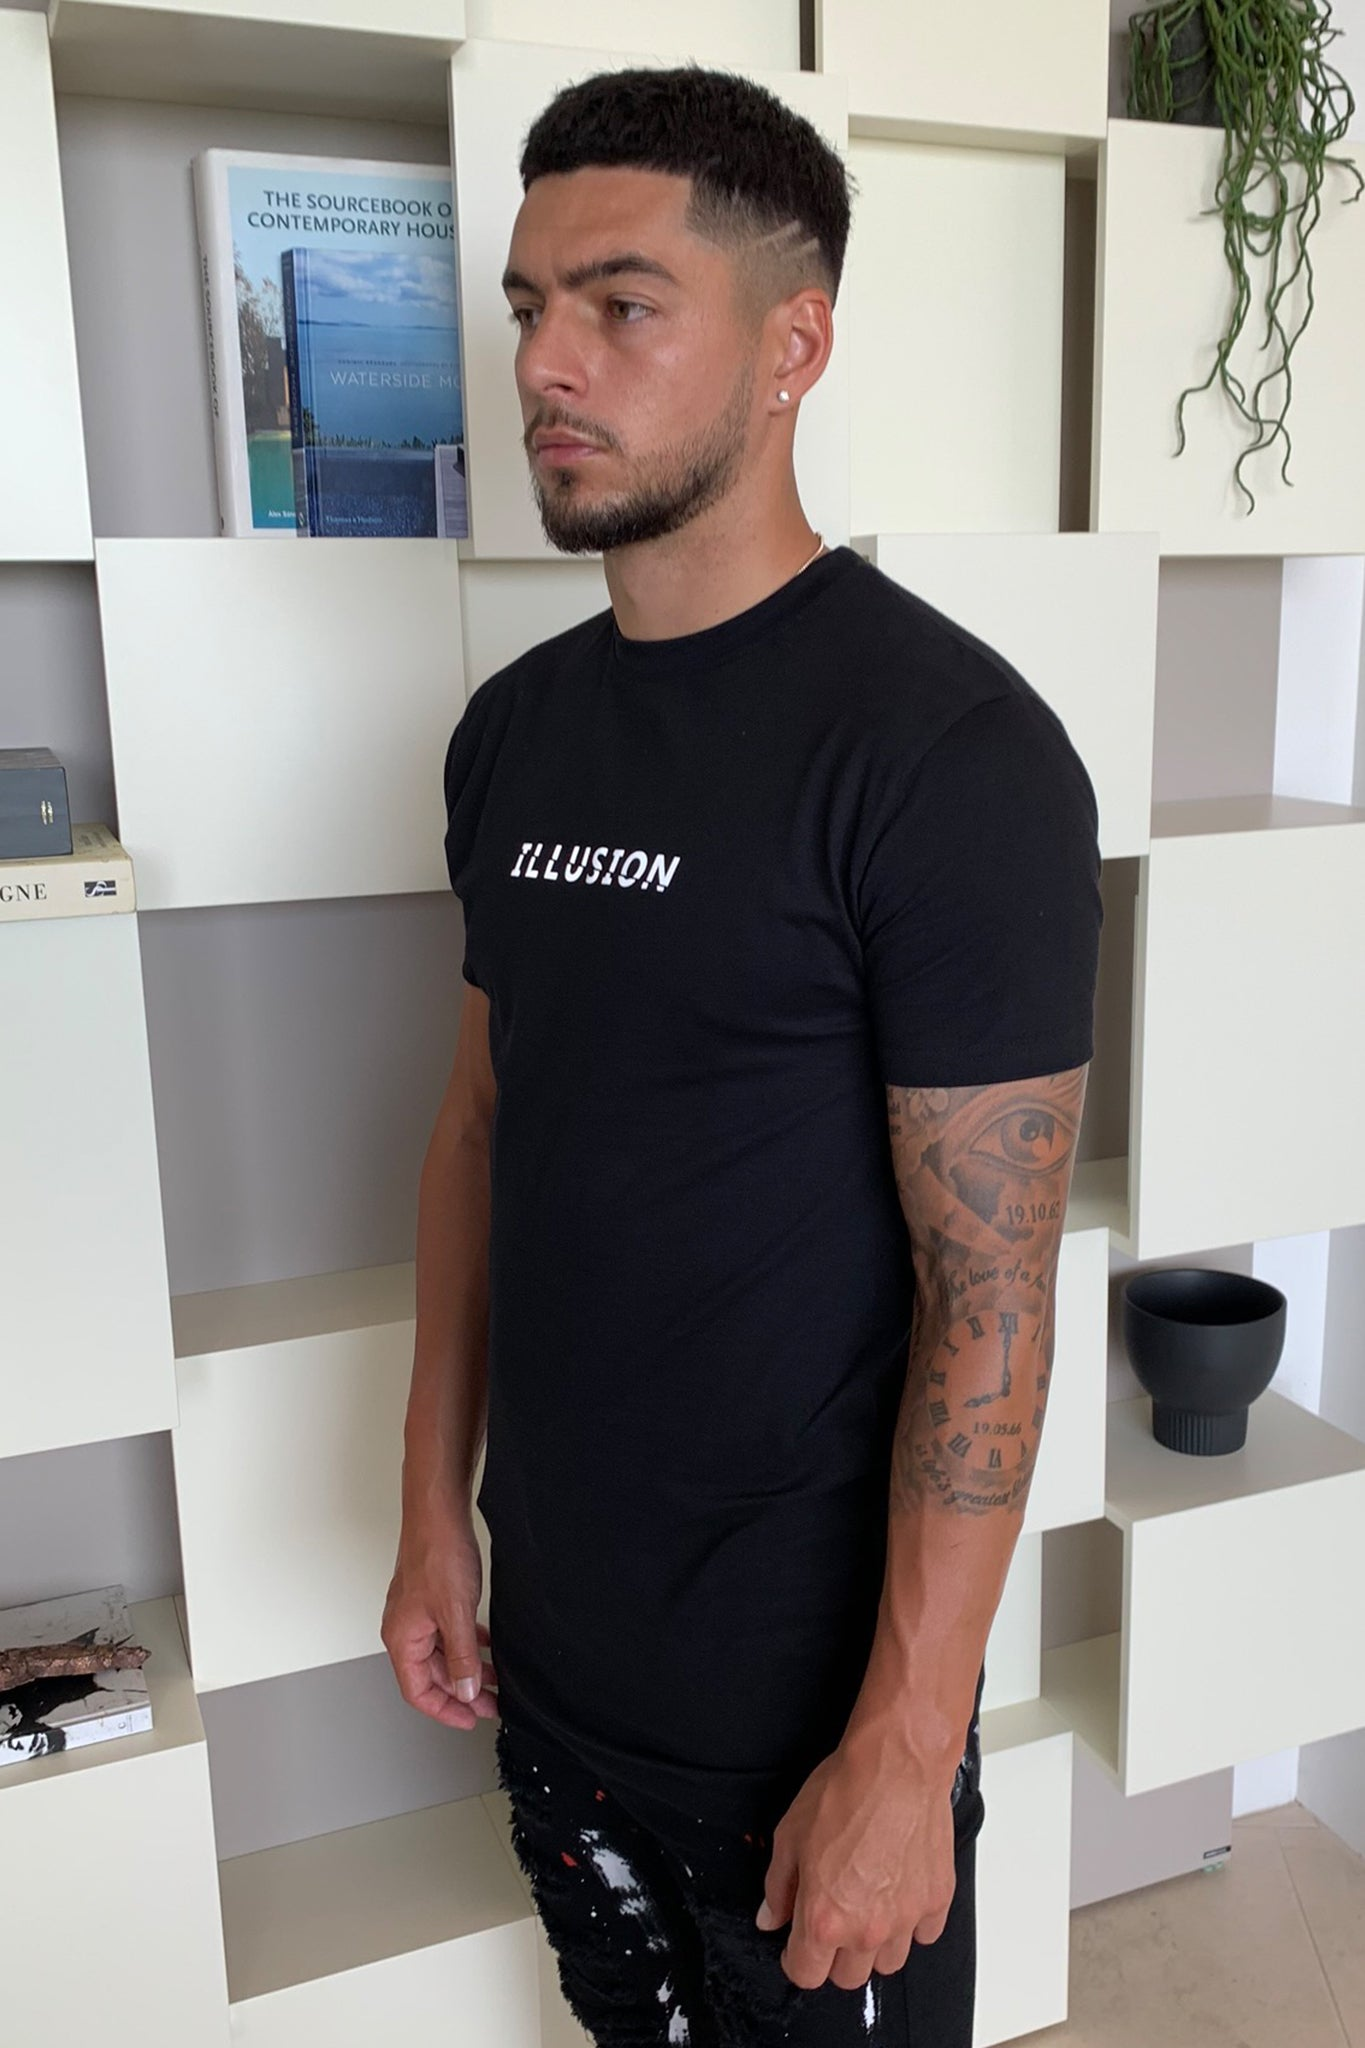 Black Reflective Tee - Illusion Attire